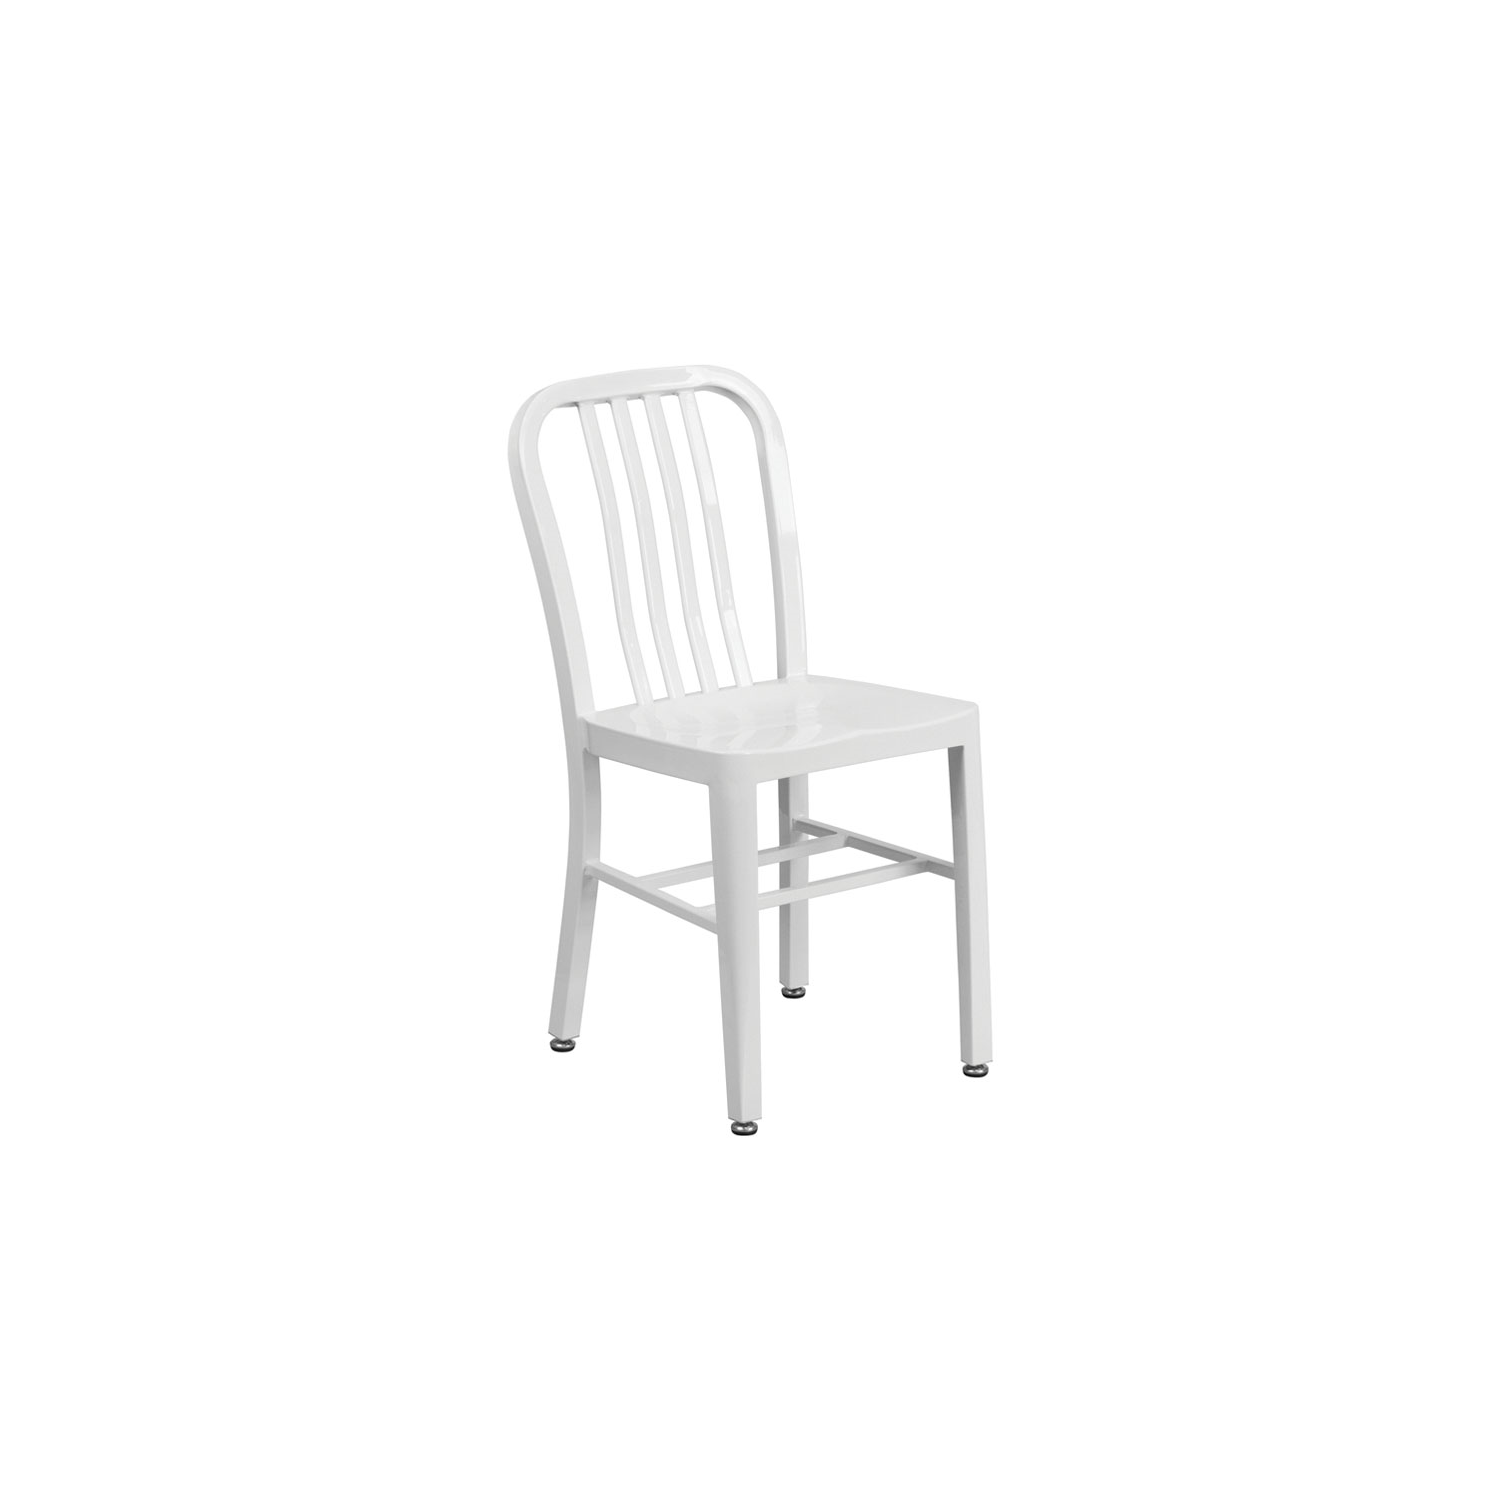 Flash furniture metal indoor outdoor stool chair white online only